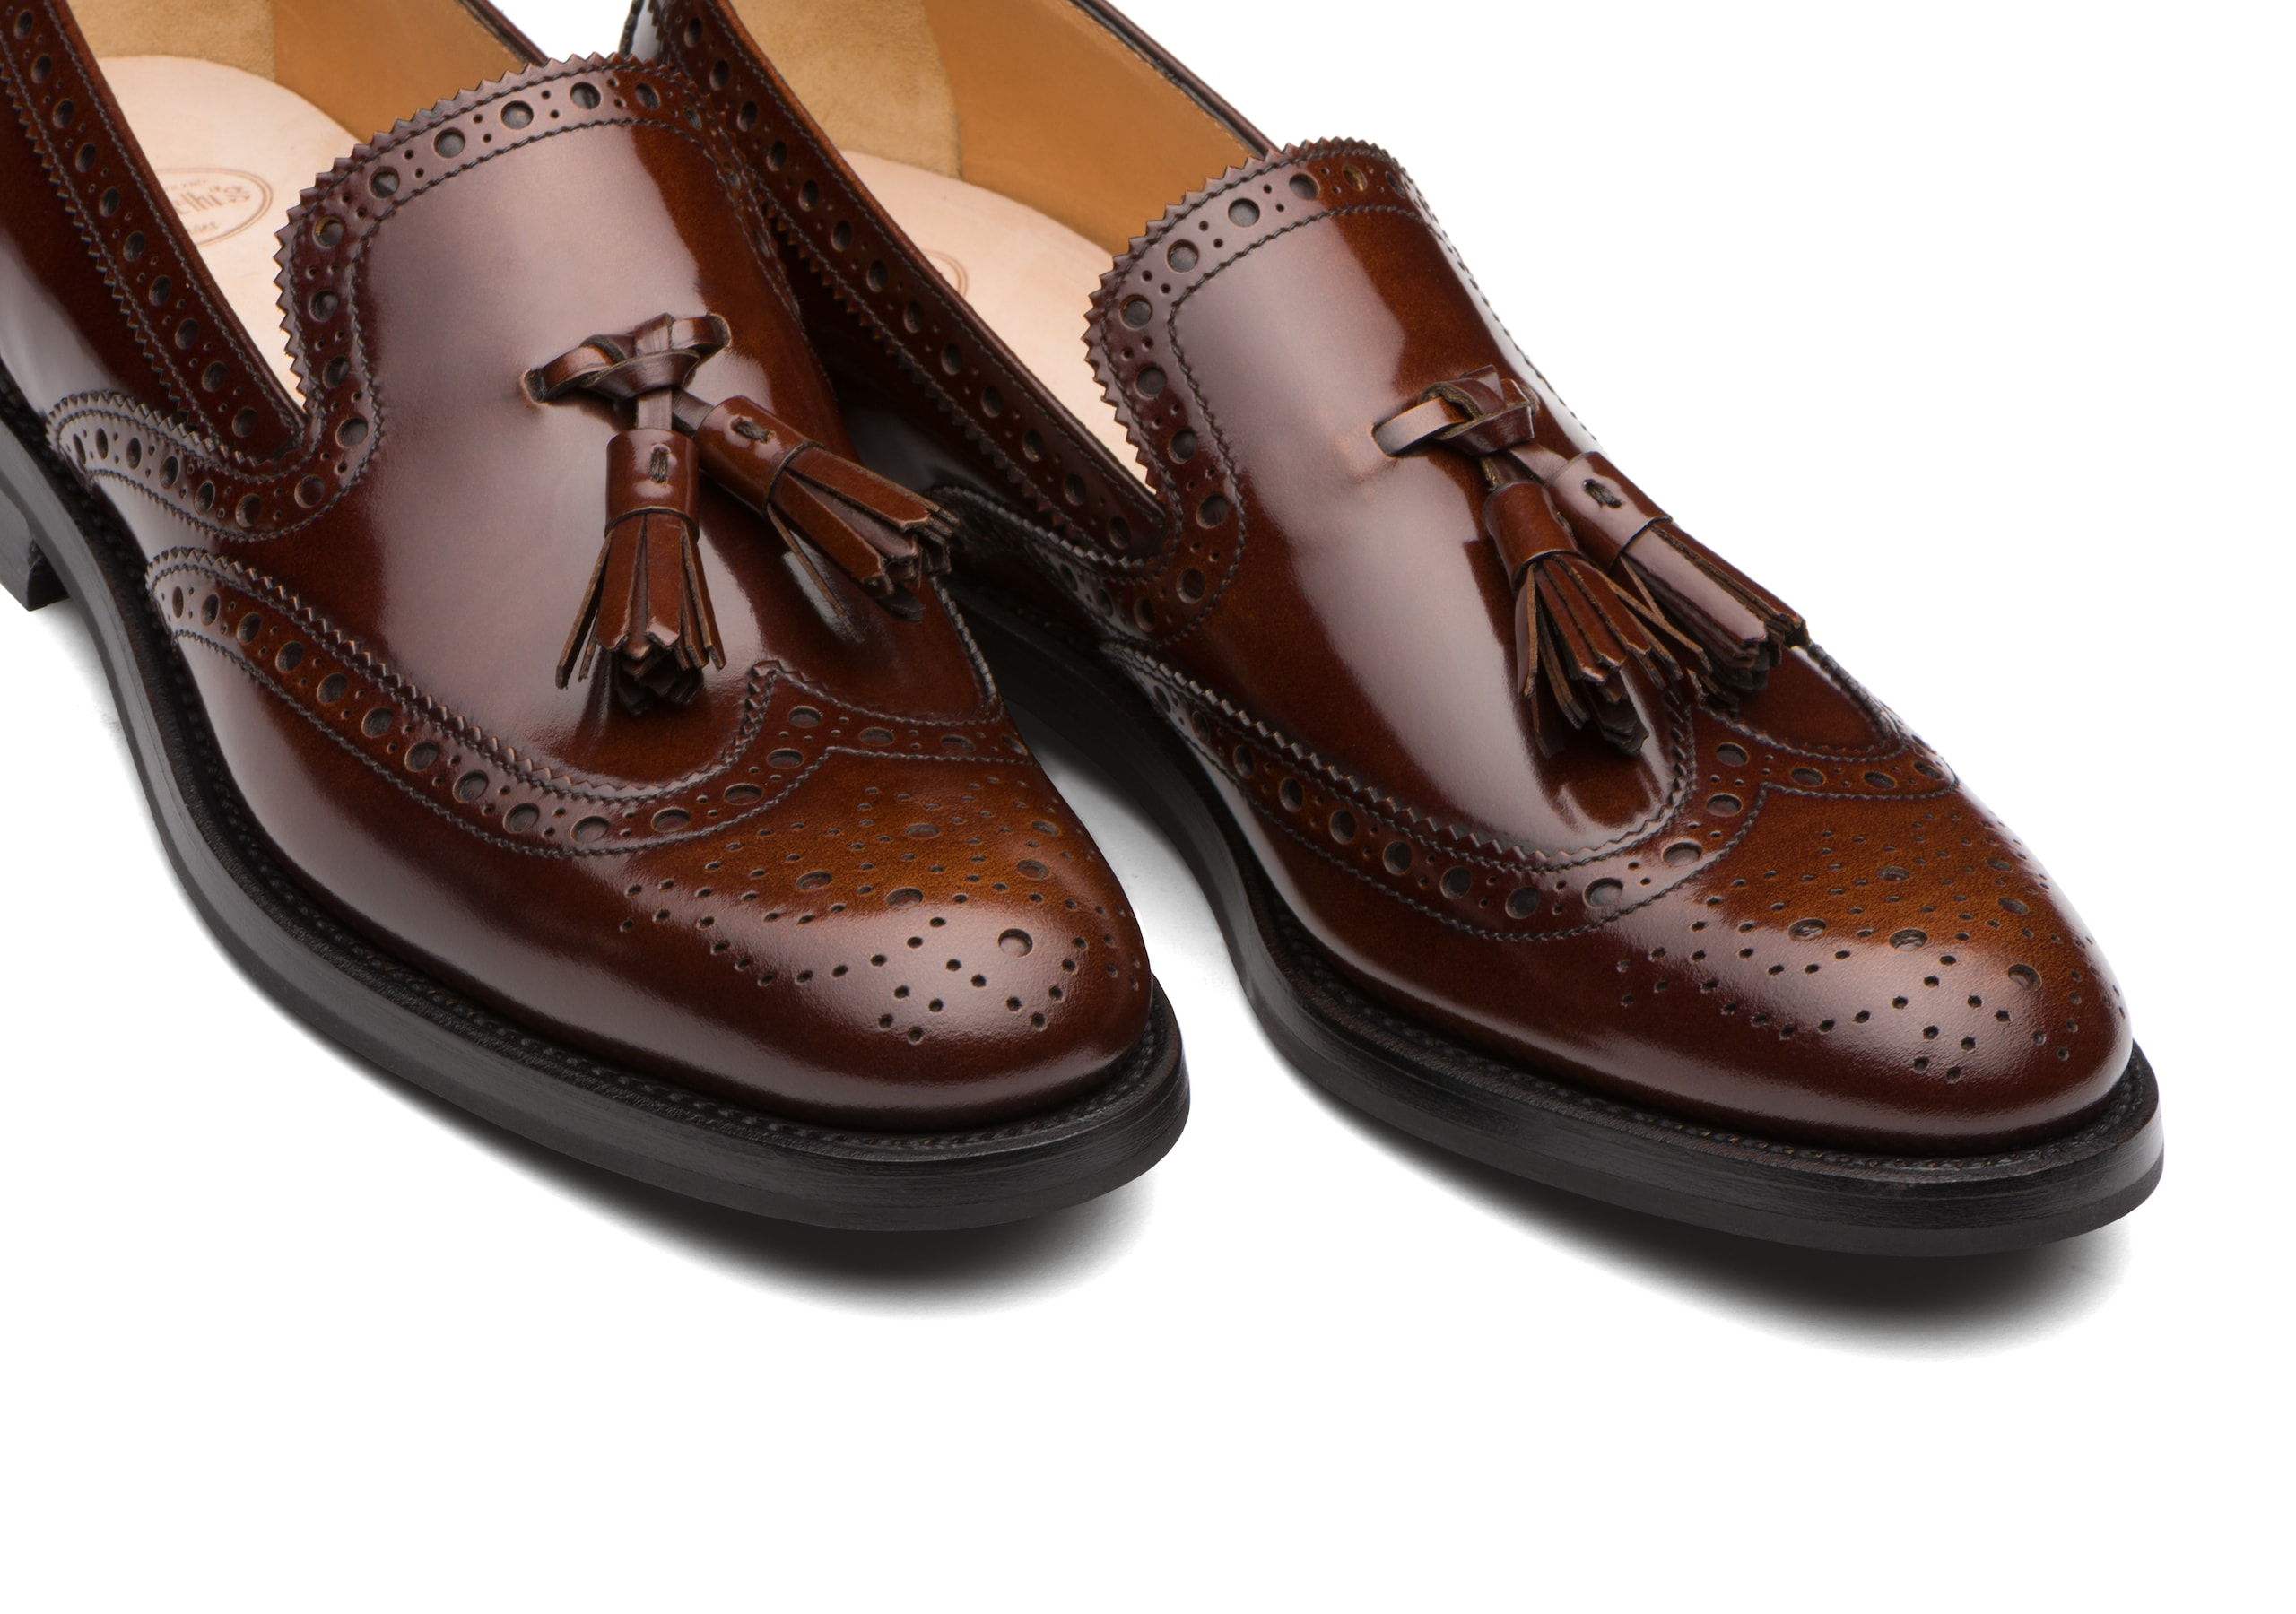 Tamaryn 2 Church's Mocassino Brogue in Pelle Lucida Fumé Marrone